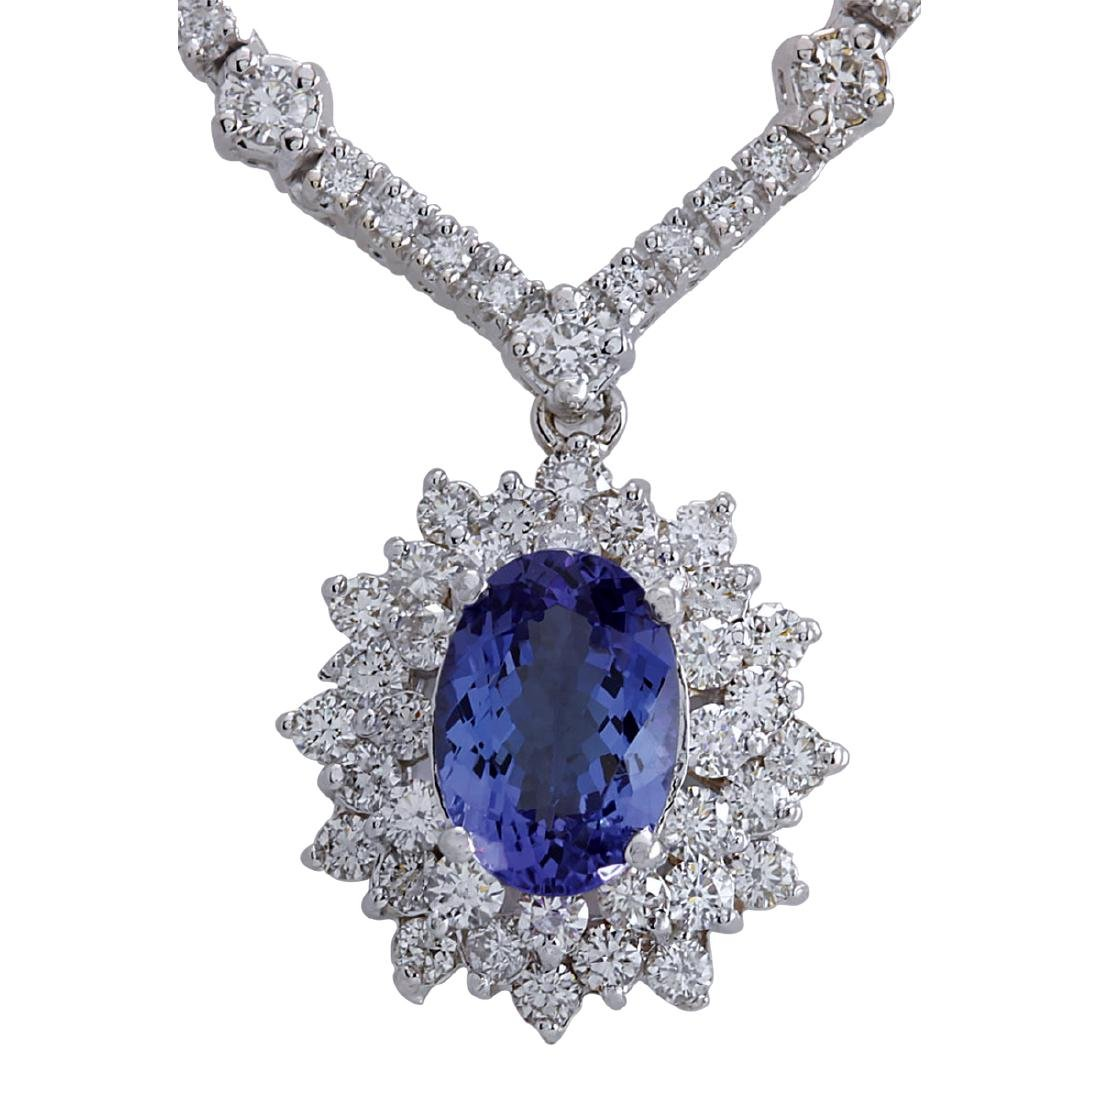 8.41CTW Natural Tanzanite And Diamond Necklace In 18K